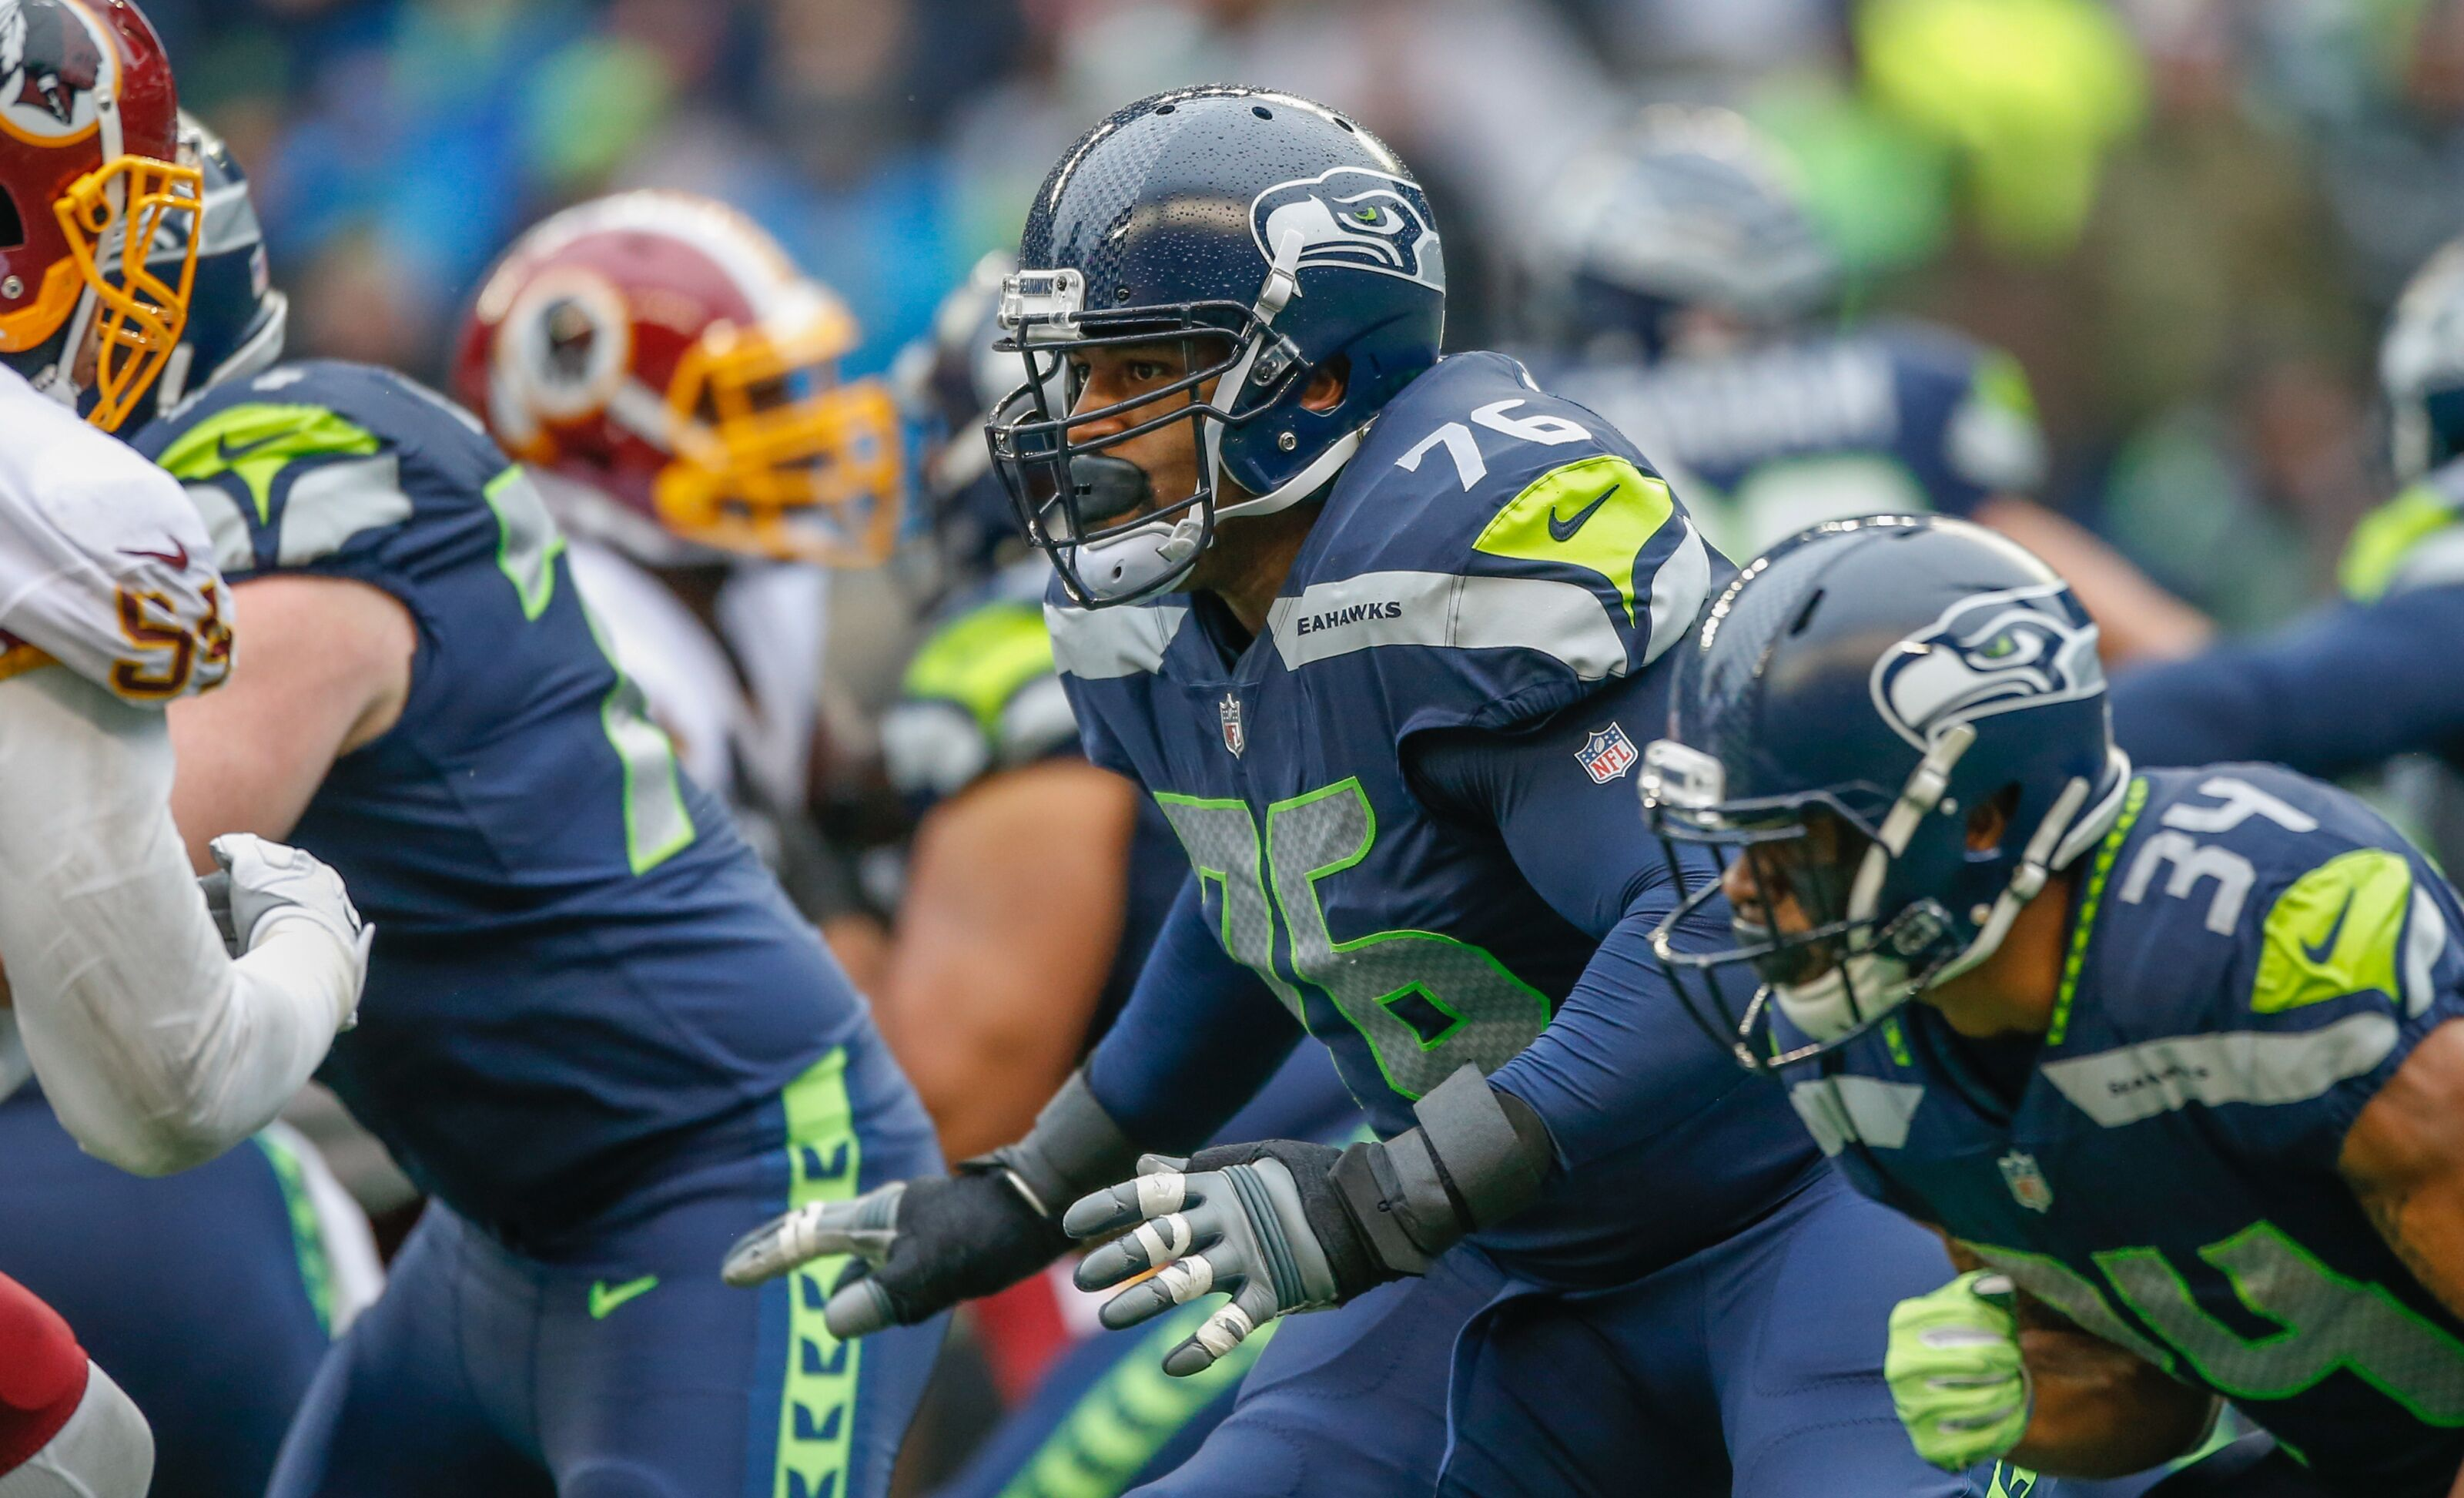 Seahawks injuries versus Browns are bad for business